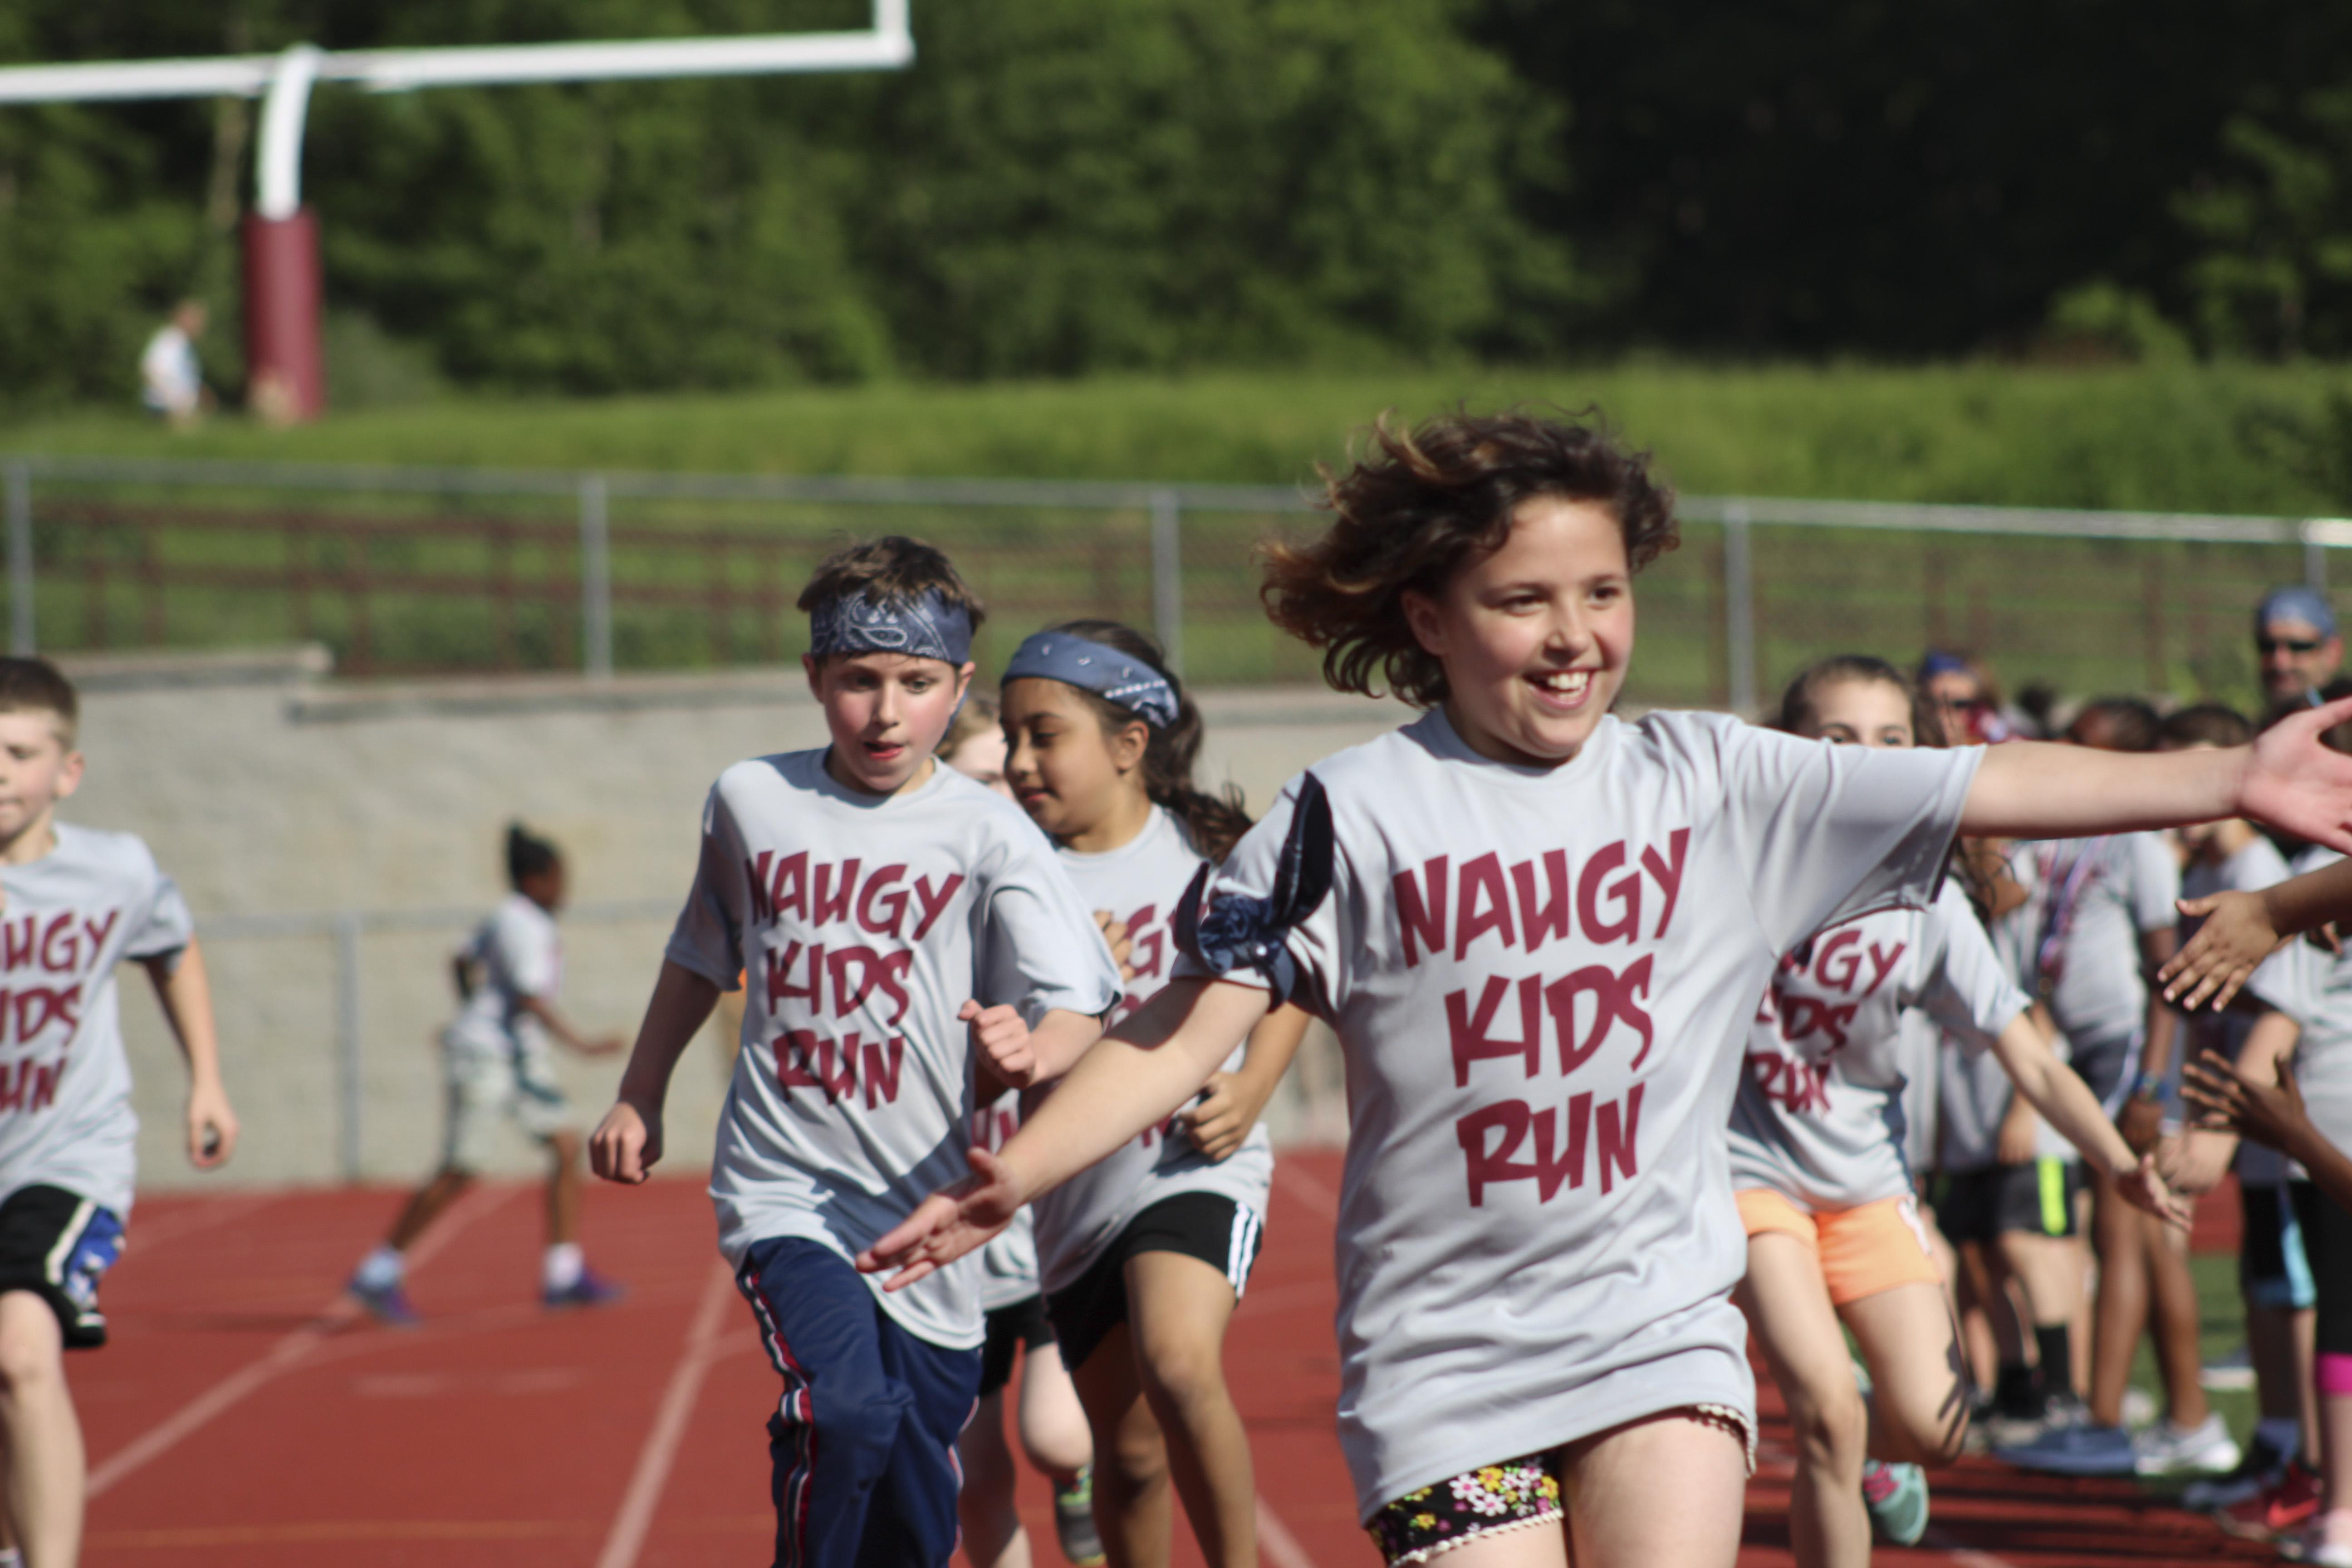 Naugy Kids Run - students running on track